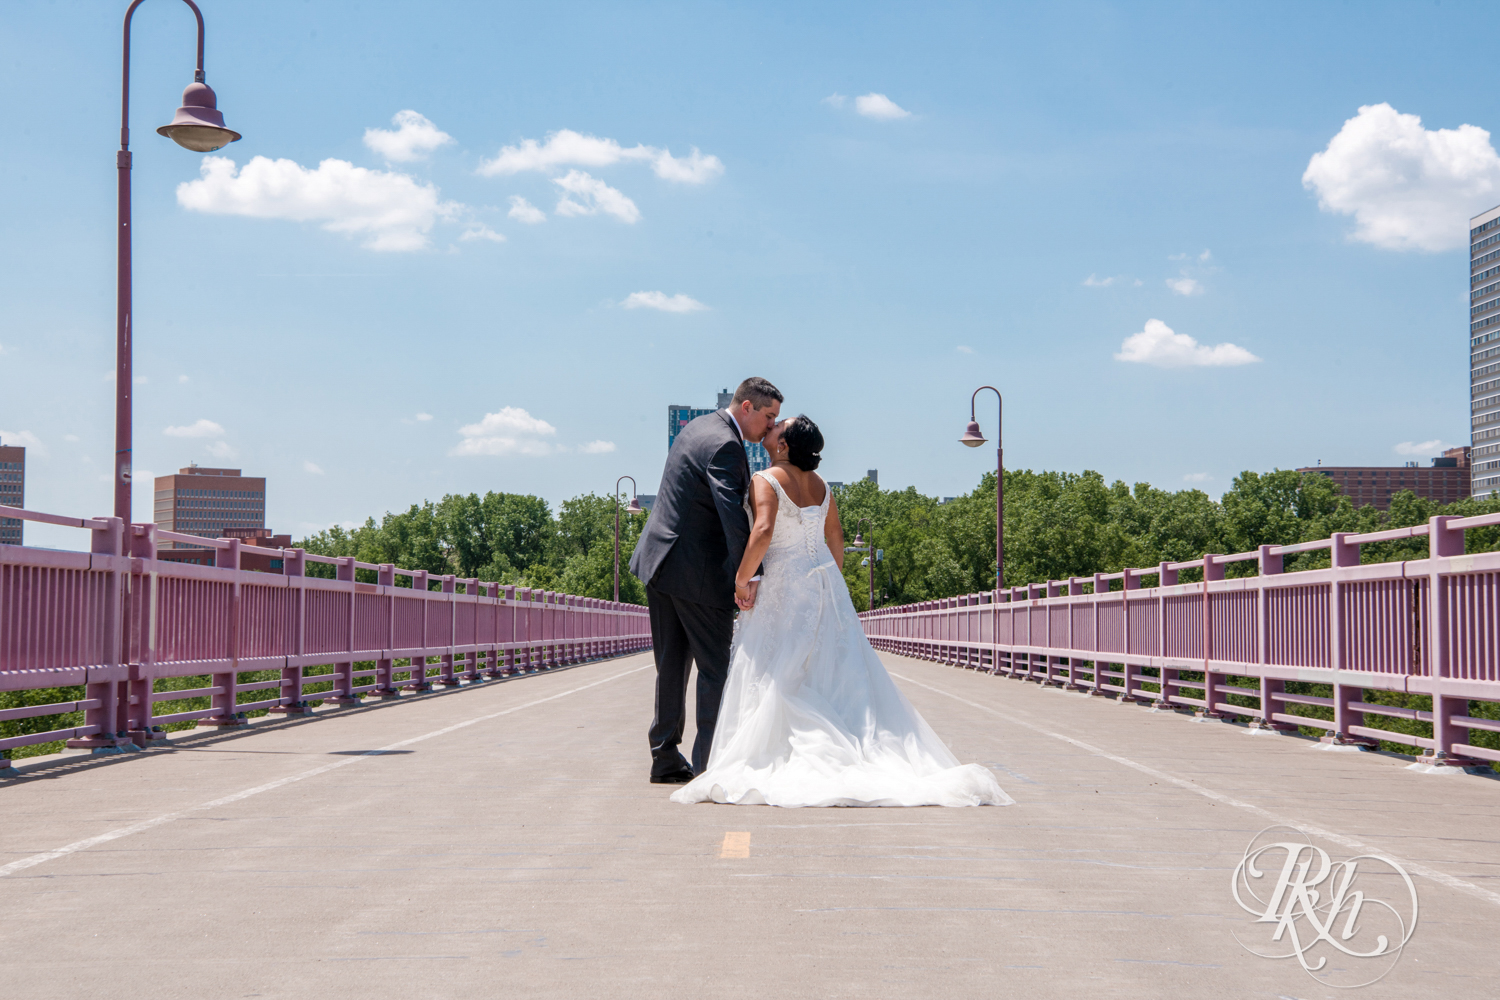 Jana and Paul - Minnesota Wedding Photography - Kellerman's Event Center - RKH Images  (29 of 77).jpg